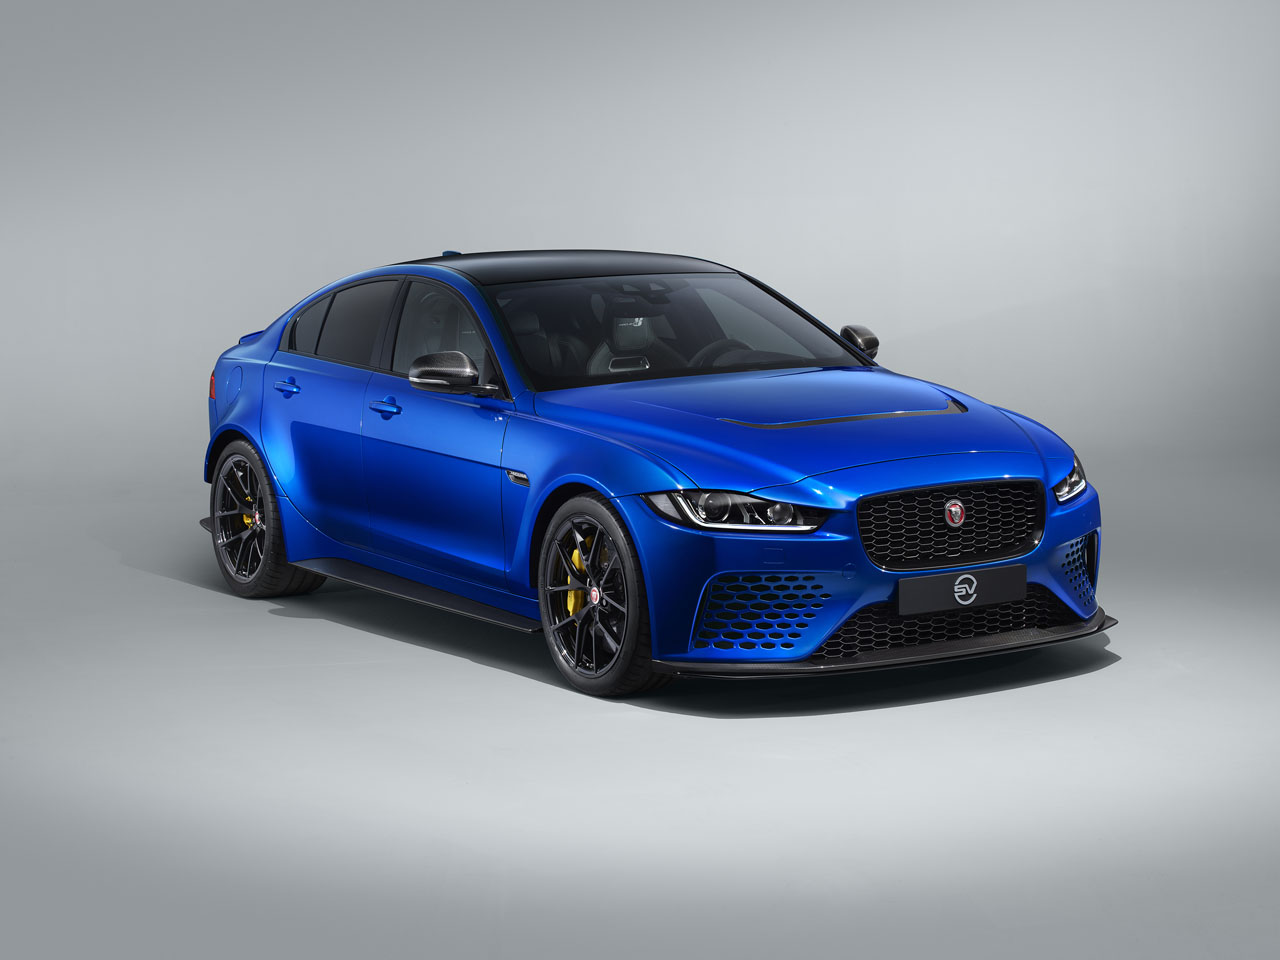 Jaguar XE SV Project 8 Touring is a Milder Shade of Crazy